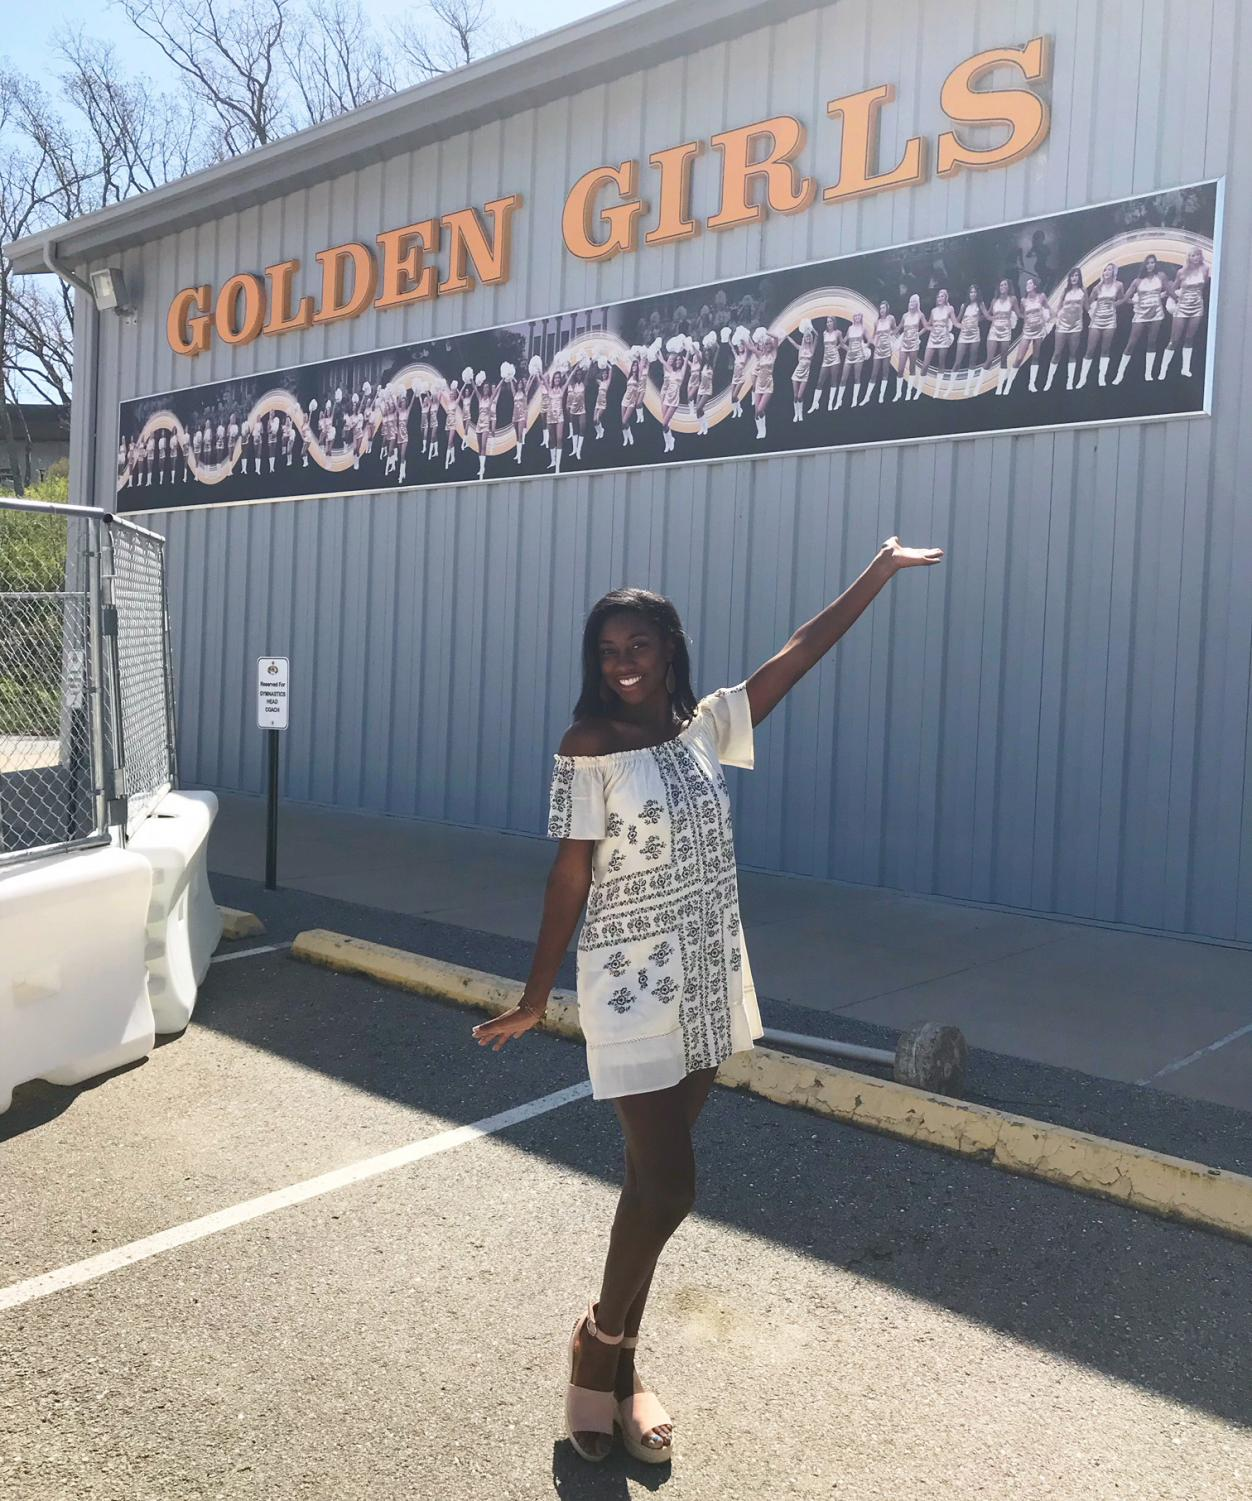 Senior Camille Sturdivant made the 2018-19 Golden Girls dance team at the University of Missouri.